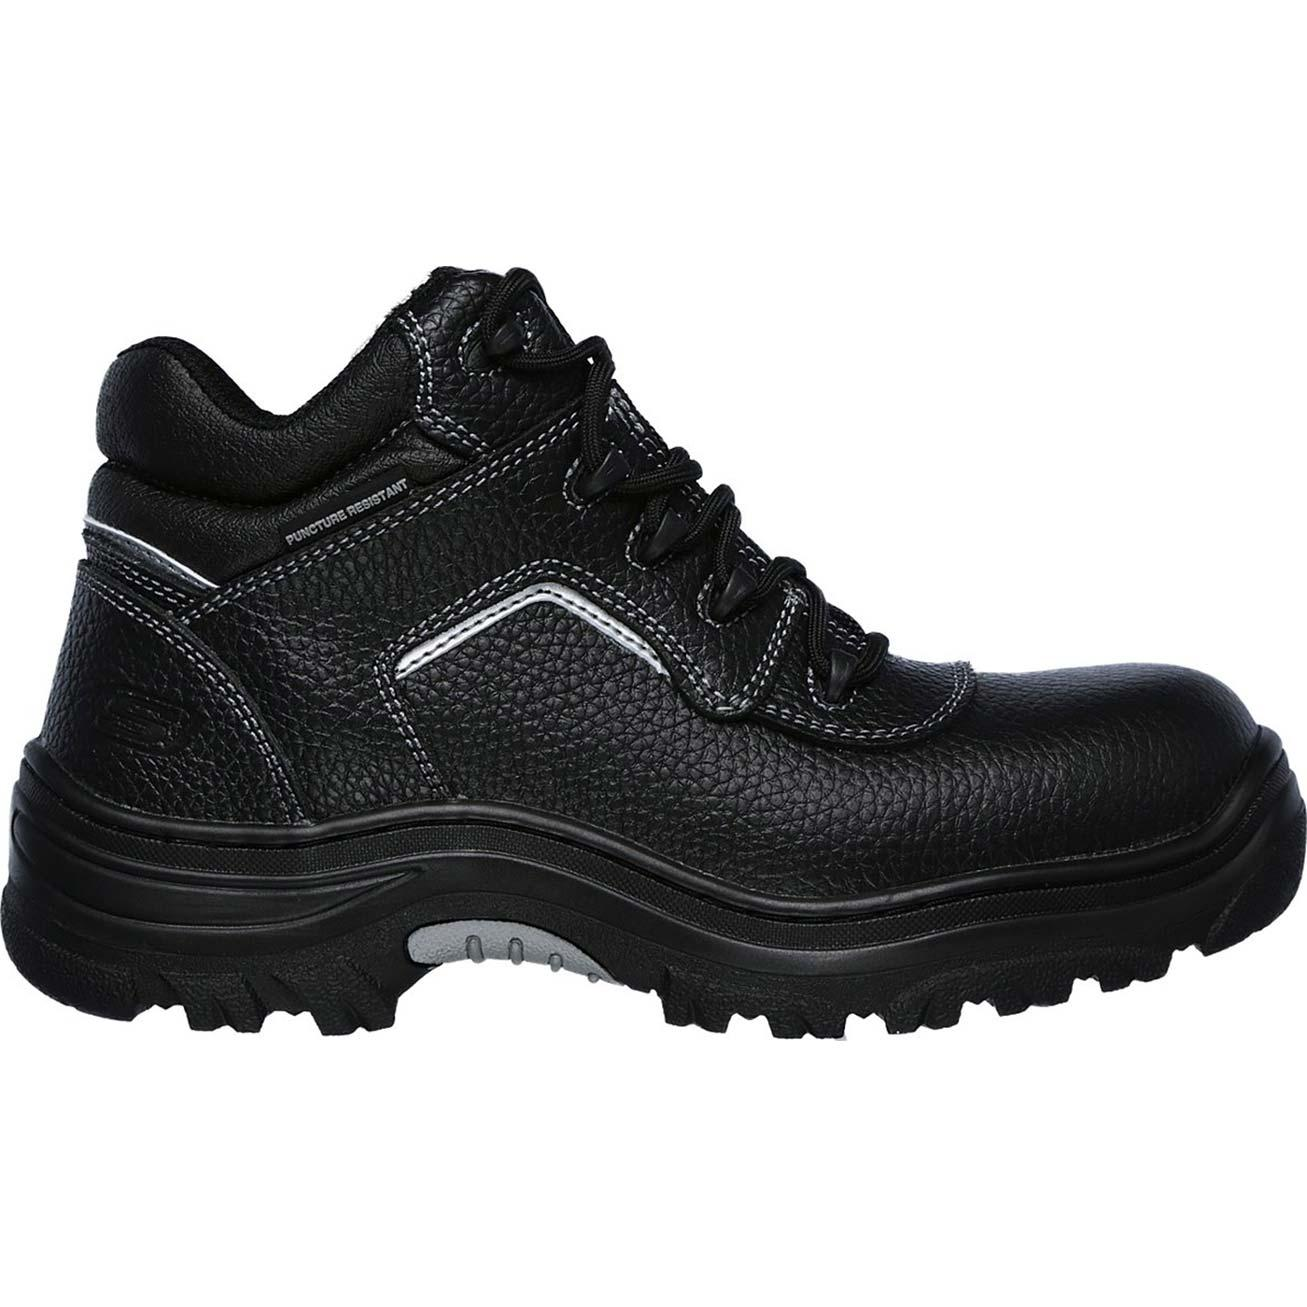 076f5e6bfe2 SKECHERS Work Burgin Sosder Composite Toe Puncture-Resistant Work Boot